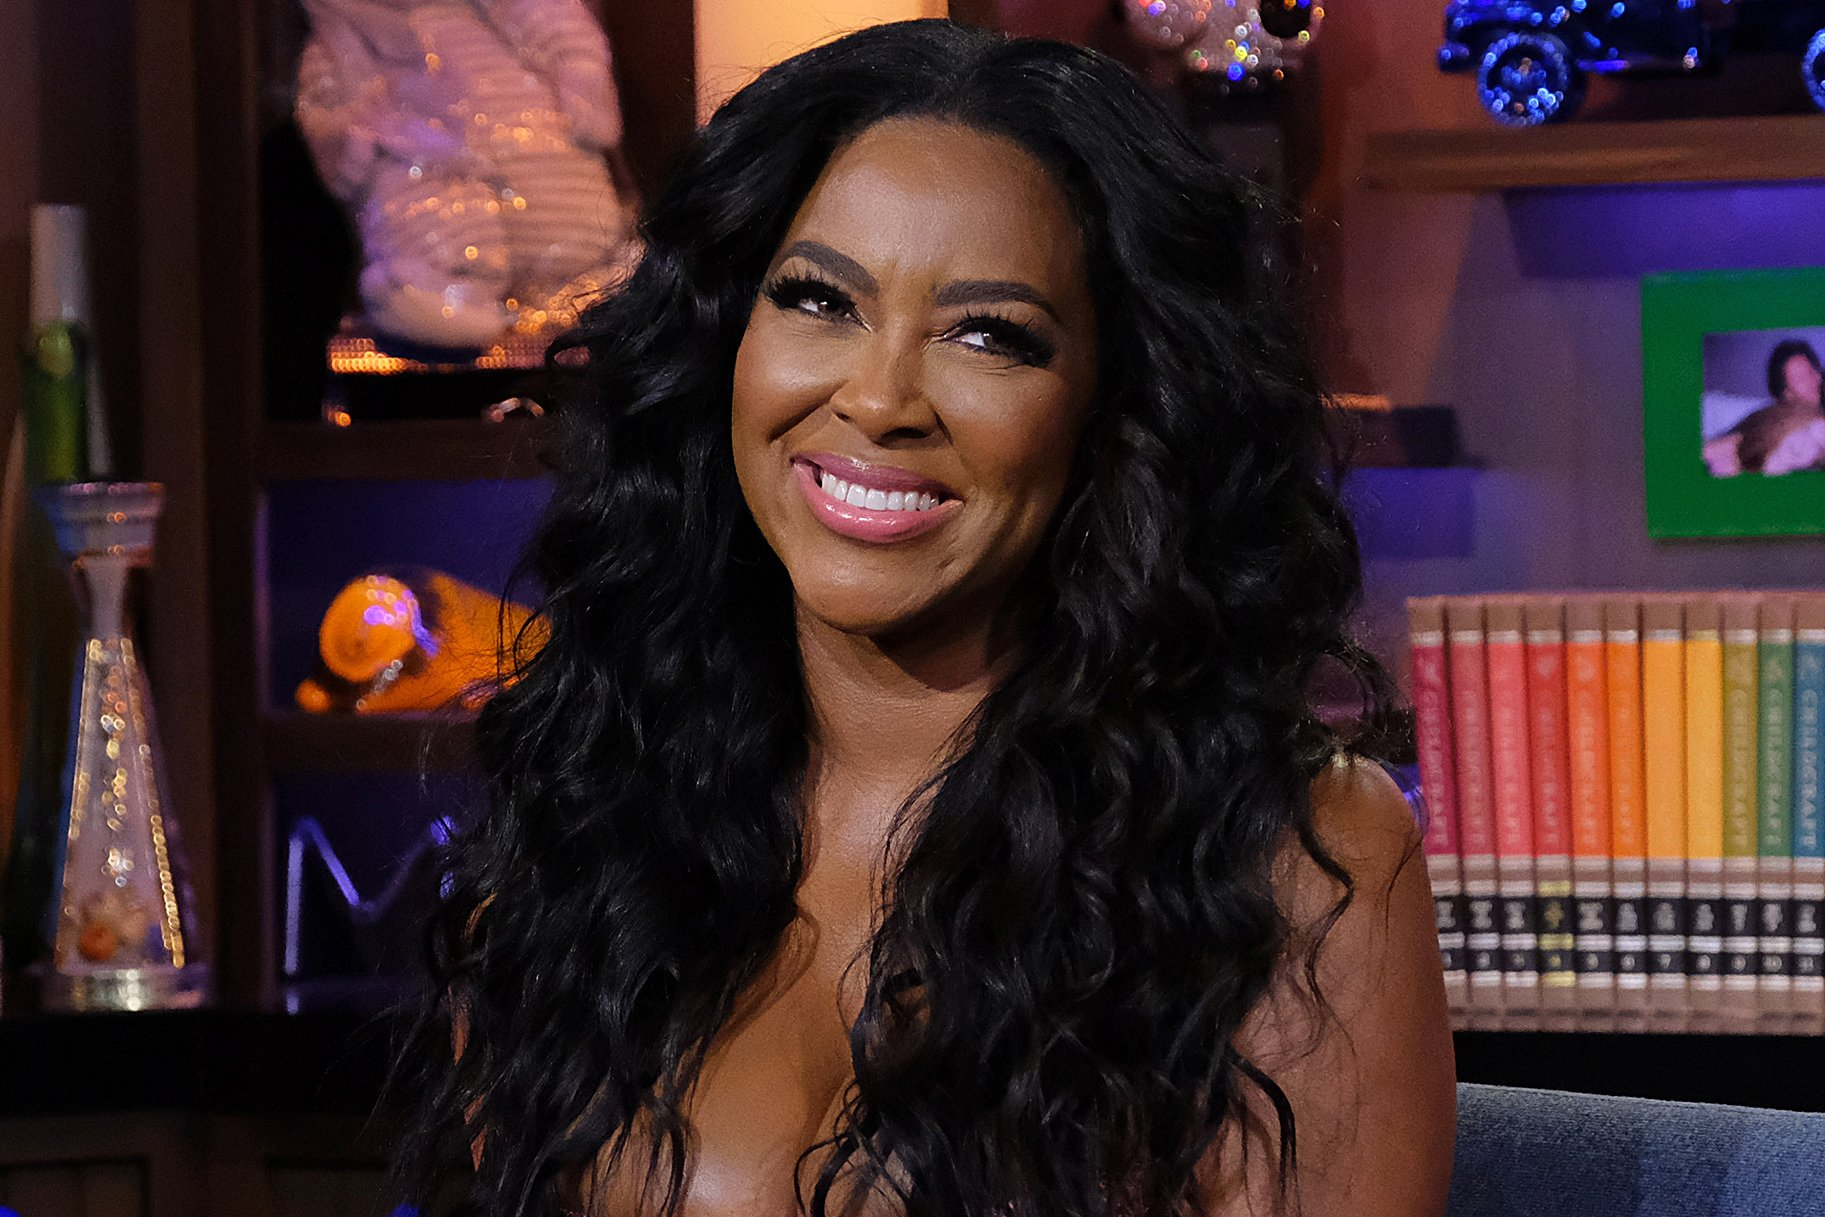 Kenya Moore Talks About What Can Drive Out Hate – Here's The Powerful Quote She Posted